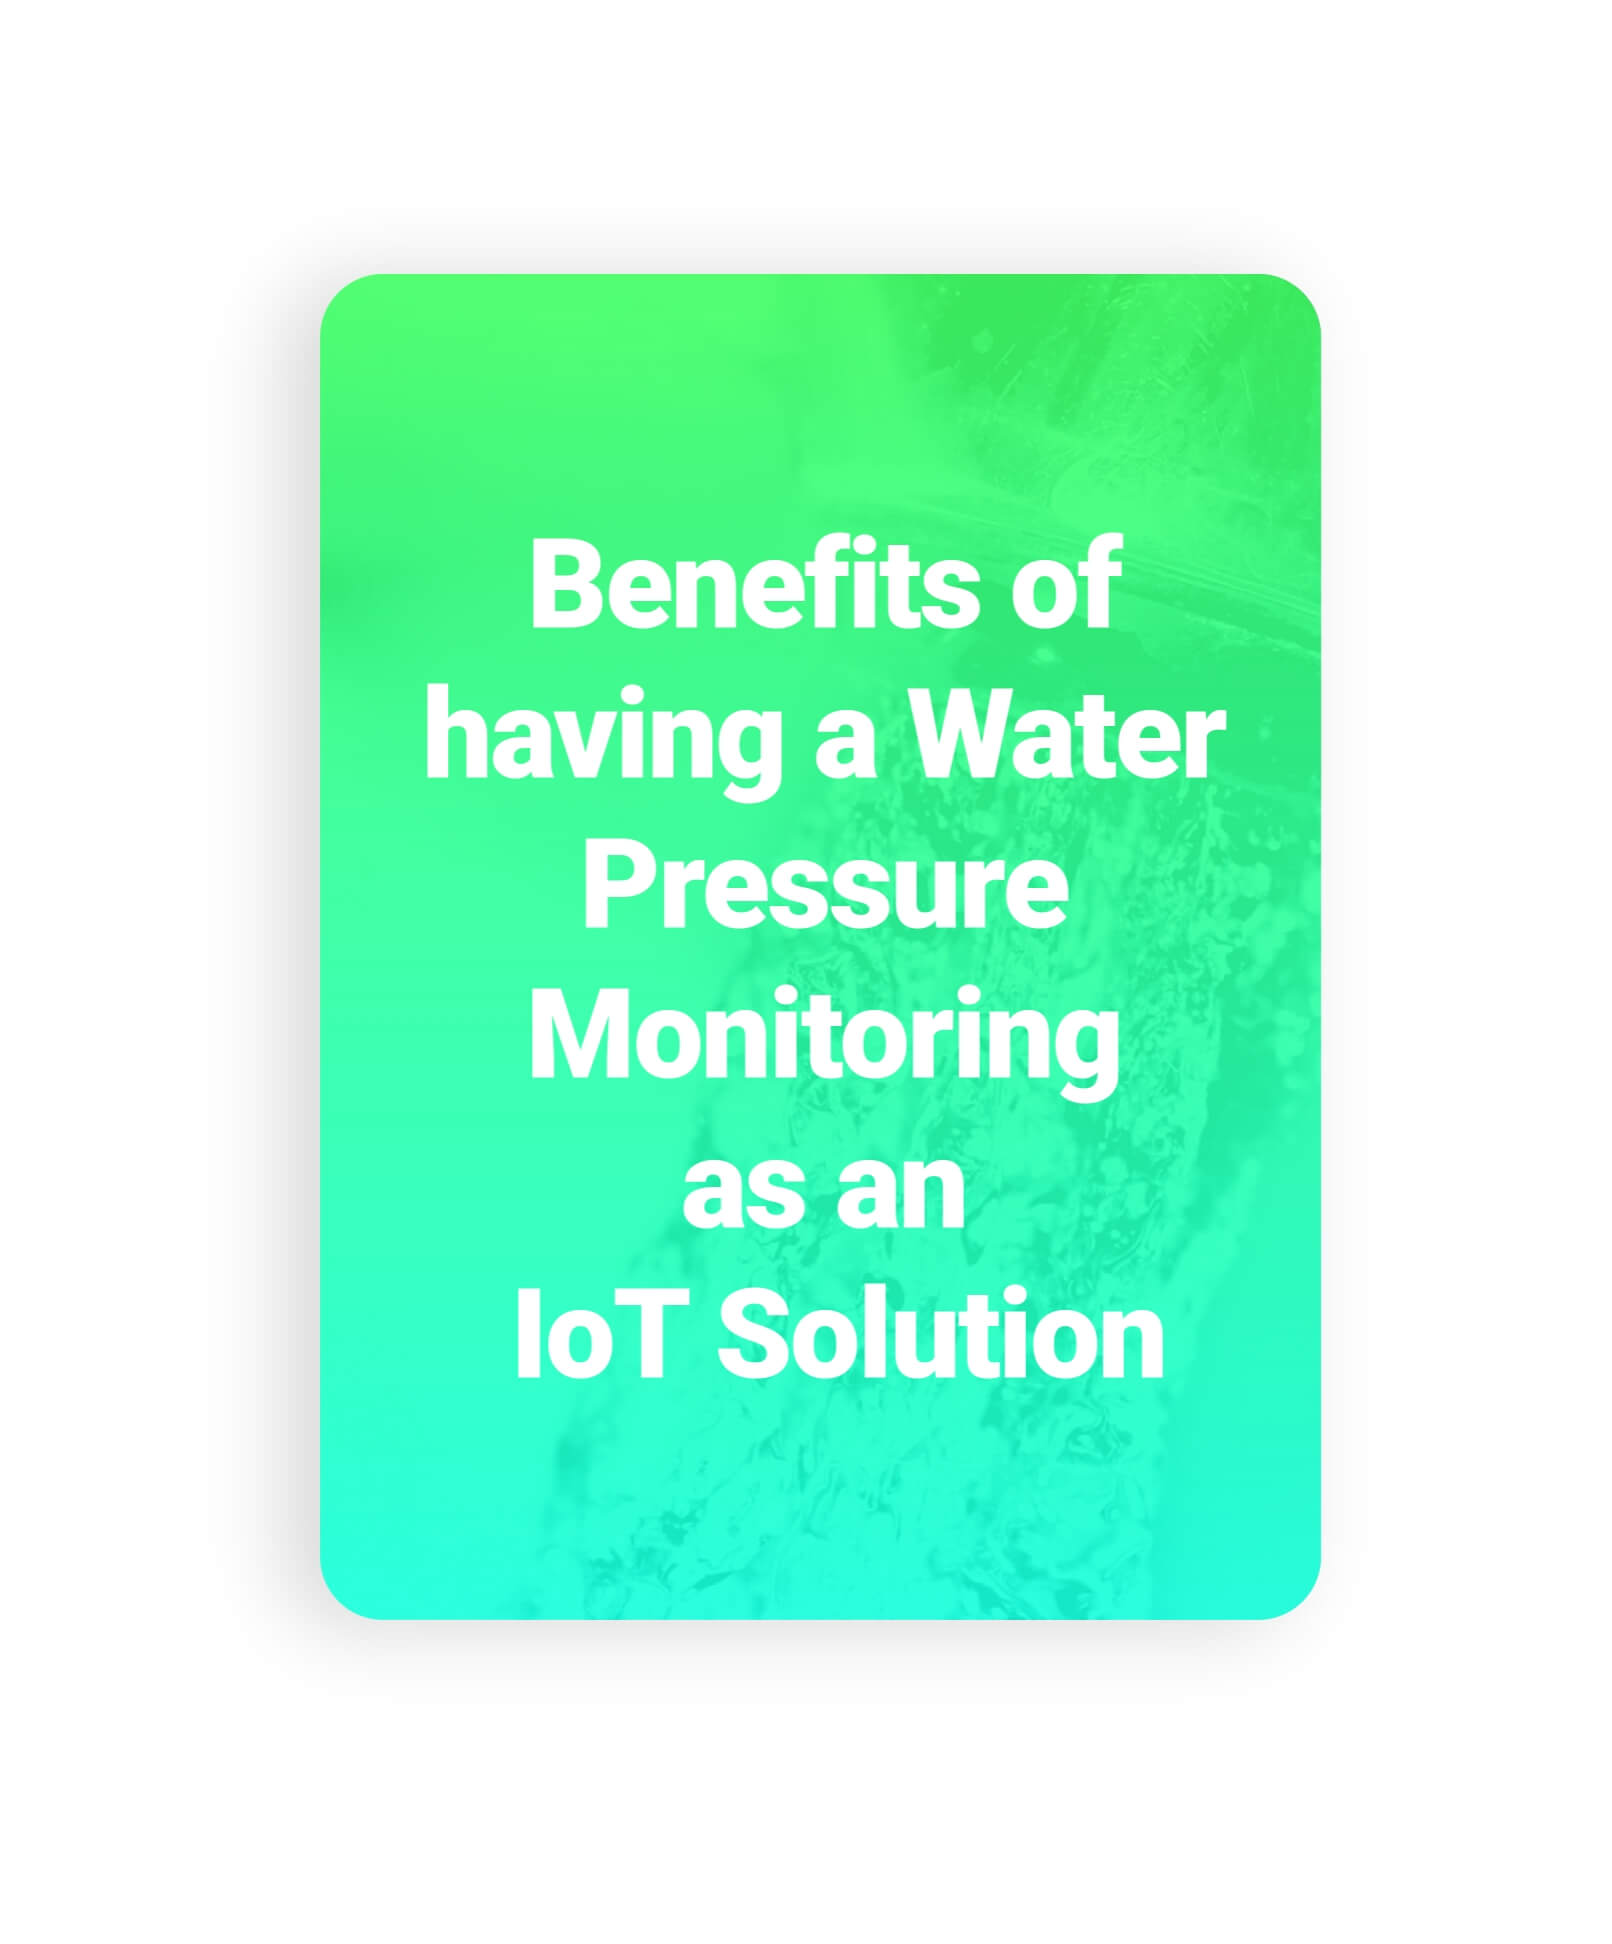 Benefits of Having an Outdoor Air Quality -IoT Solution